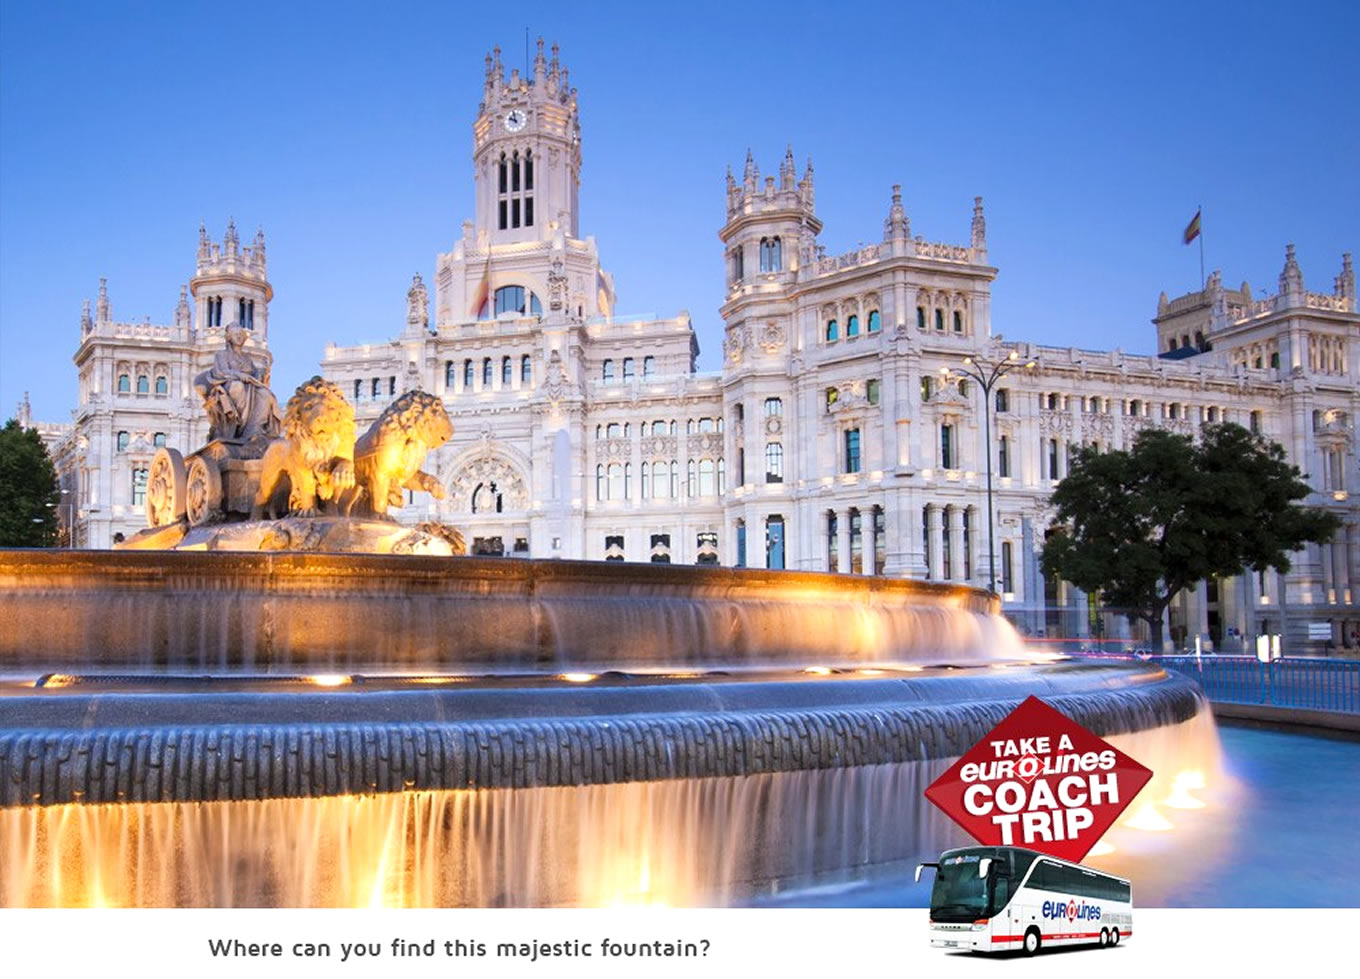 Destination Madrid Poster of Coach Trip Campaign by Eurolines UK